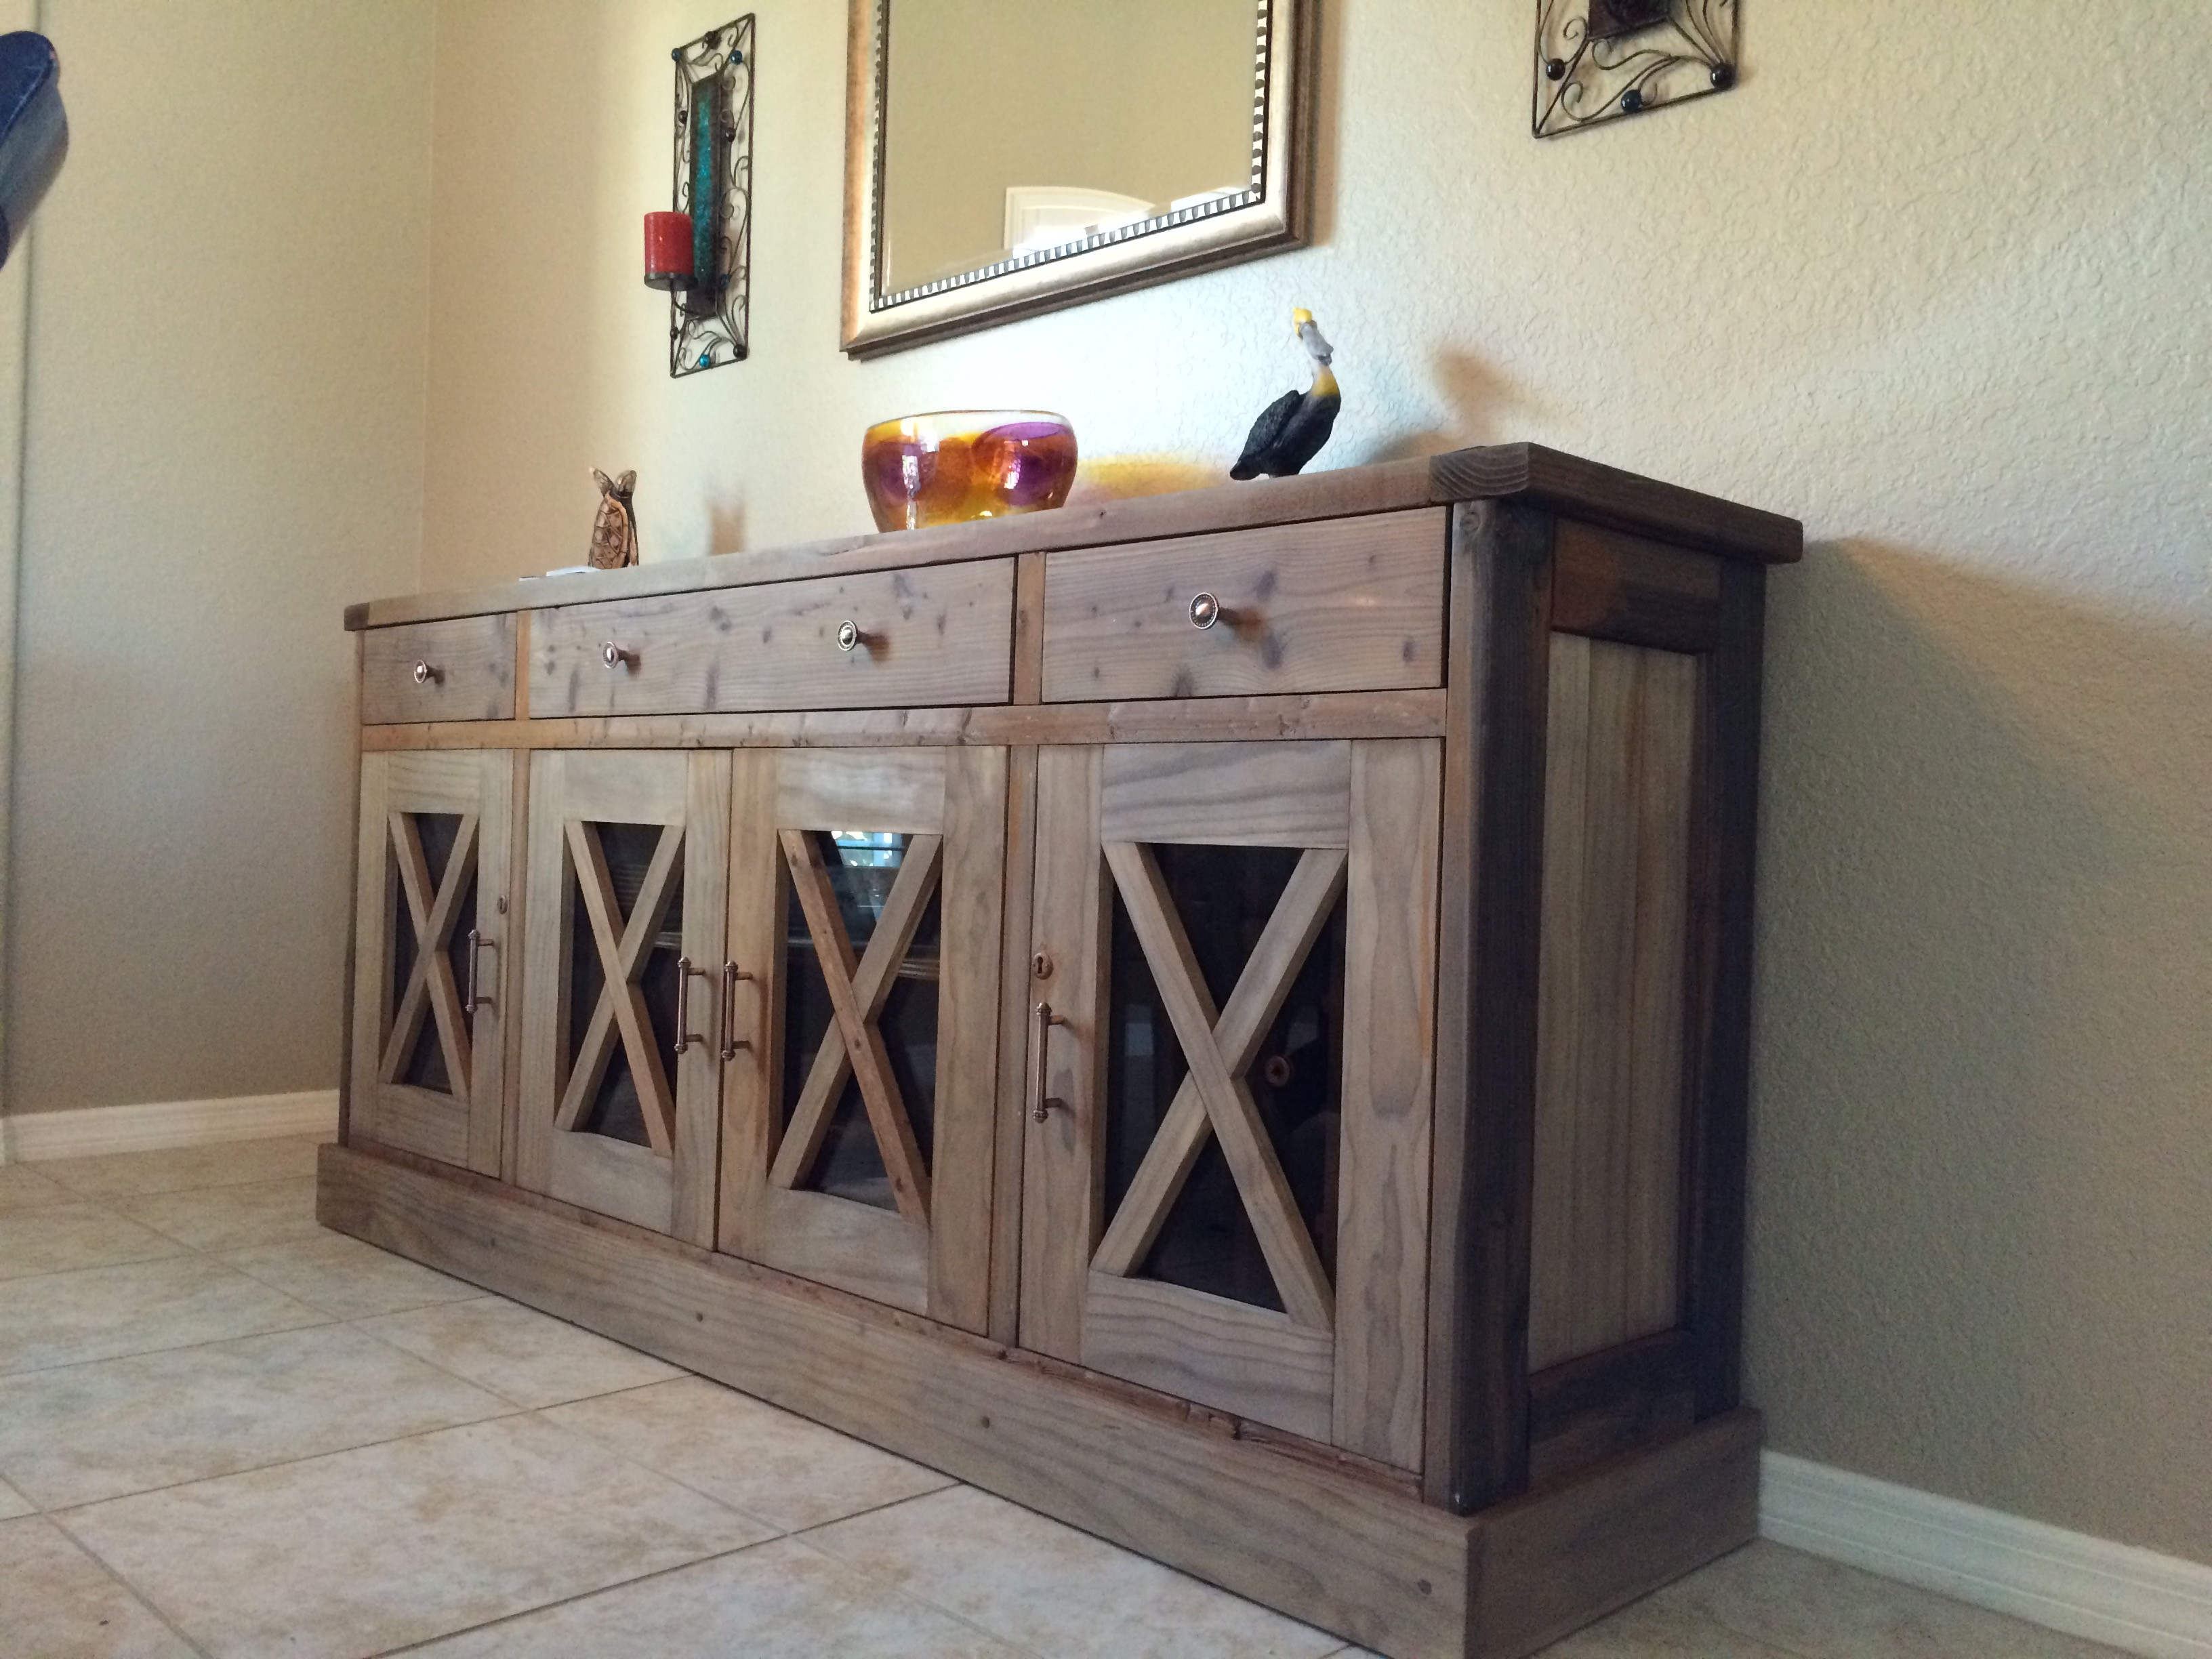 Best ideas about Dining Room Sideboard . Save or Pin Ana White Now.